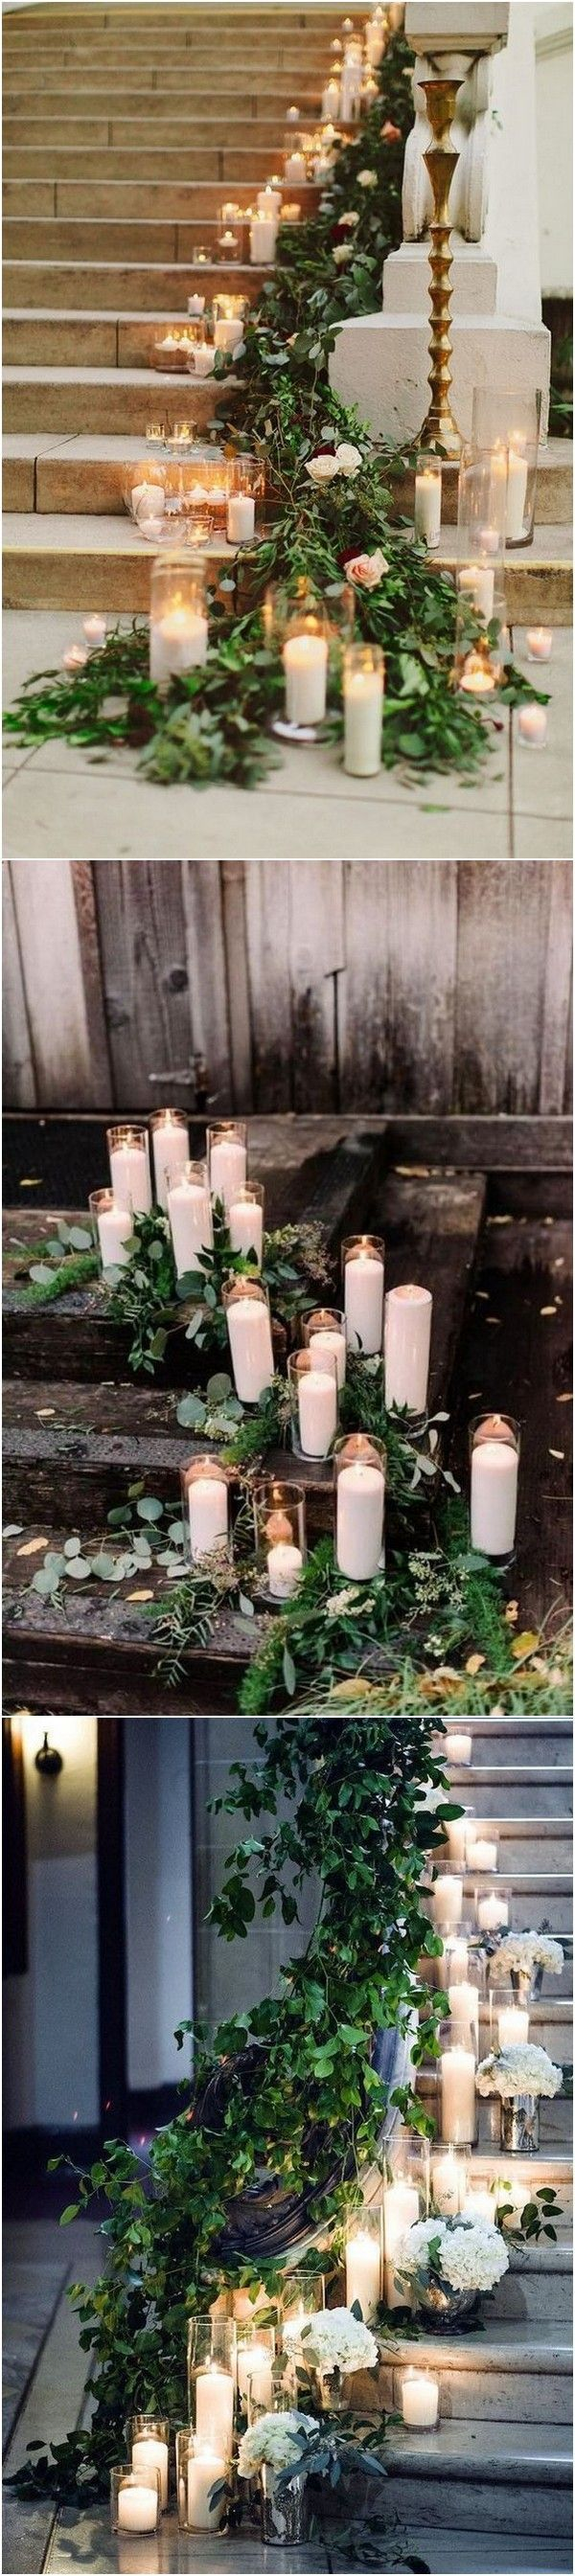 32 Whimsical Winter Wedding Decoration Ideas You'll Love